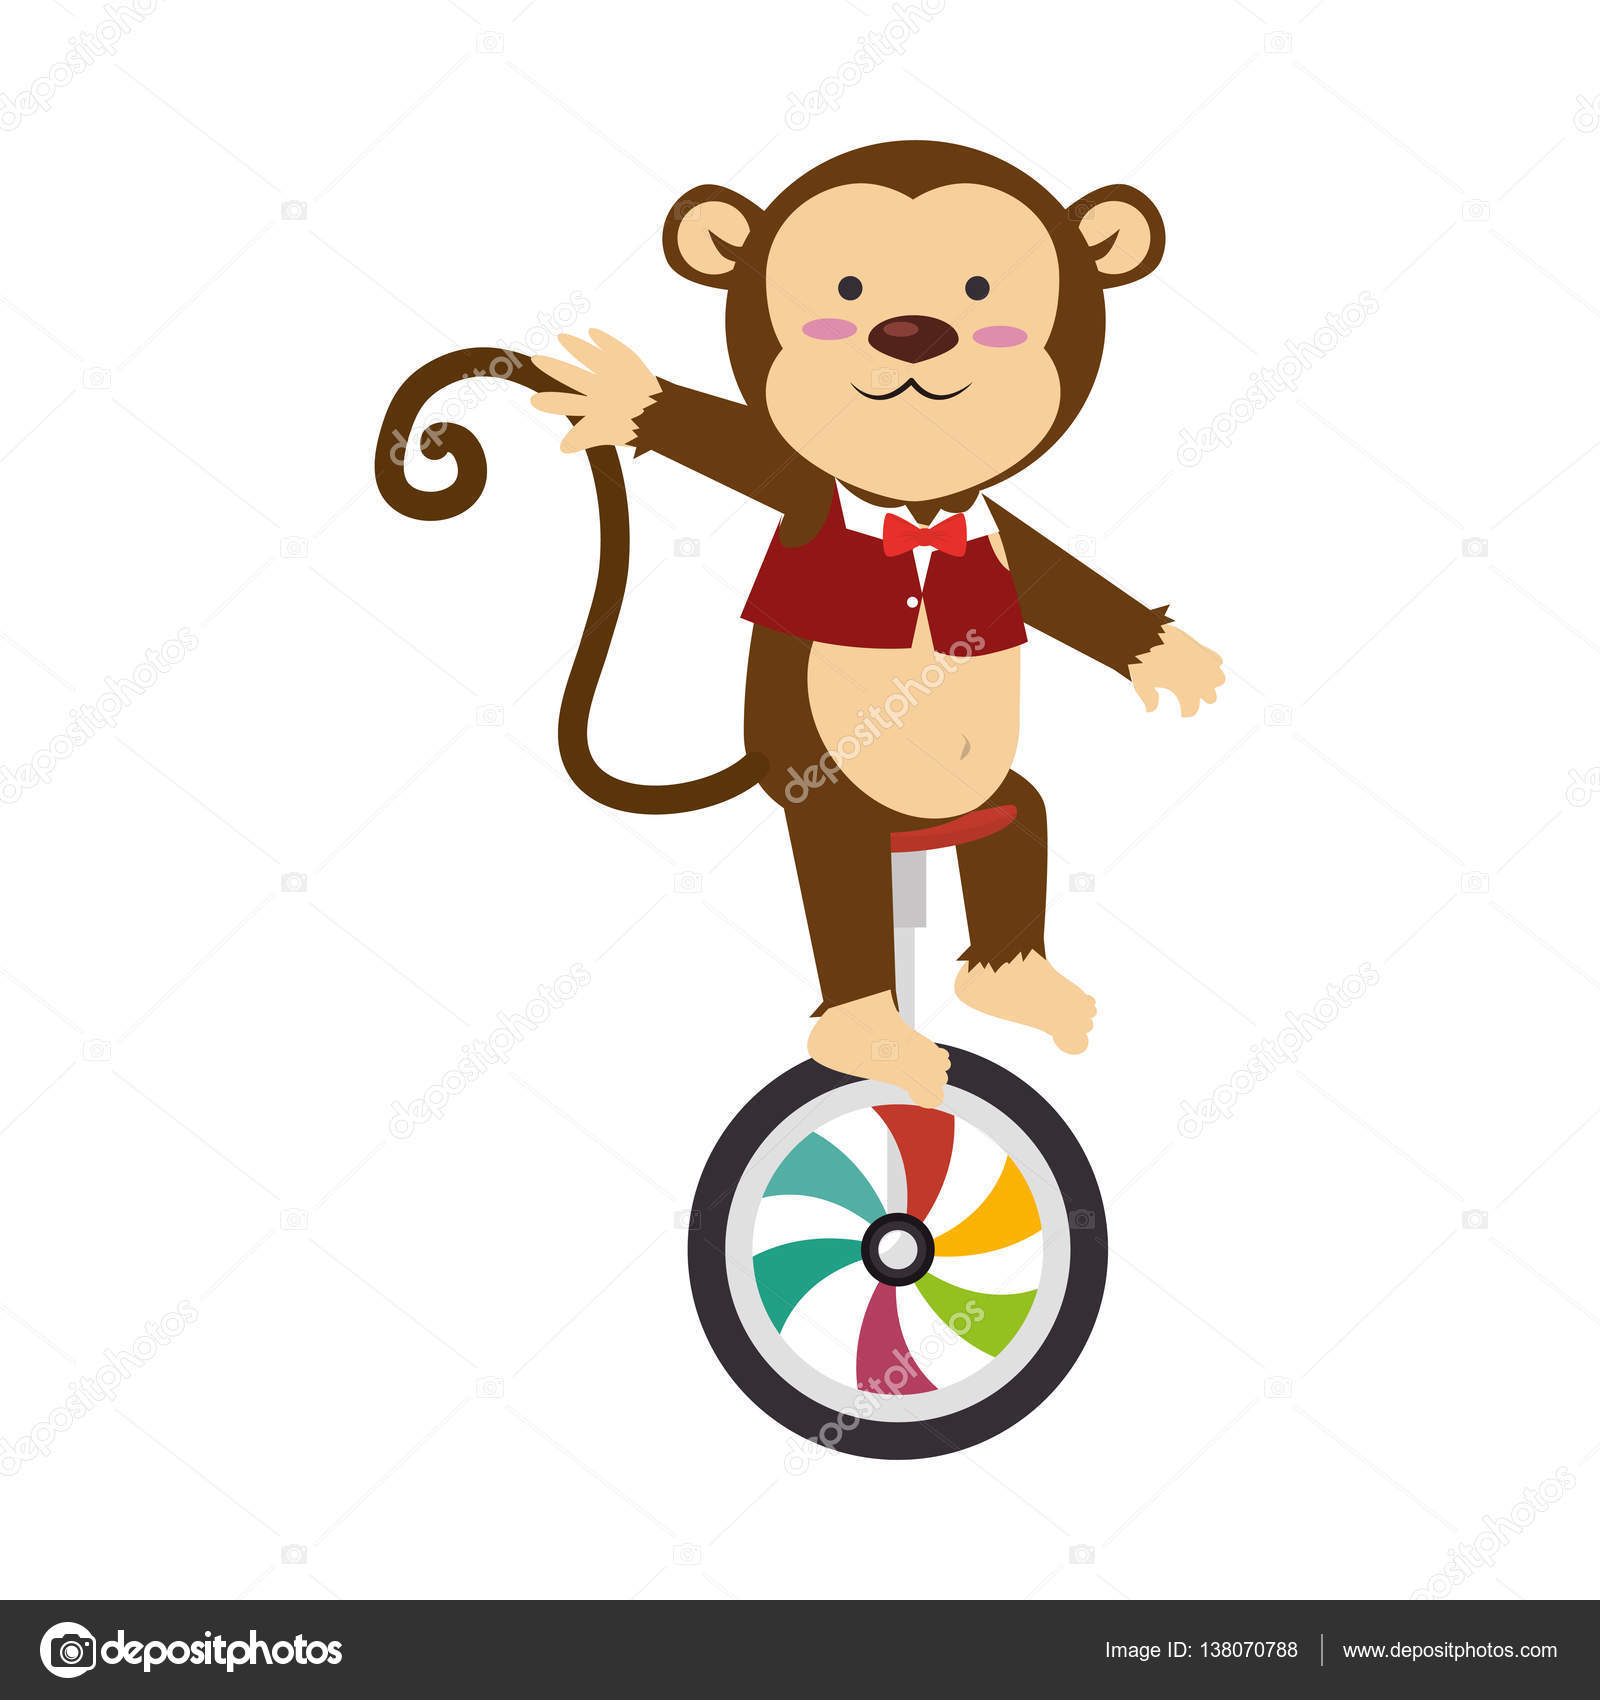 Cute monkey circus animal stock vector 169 yupiramos 138070788